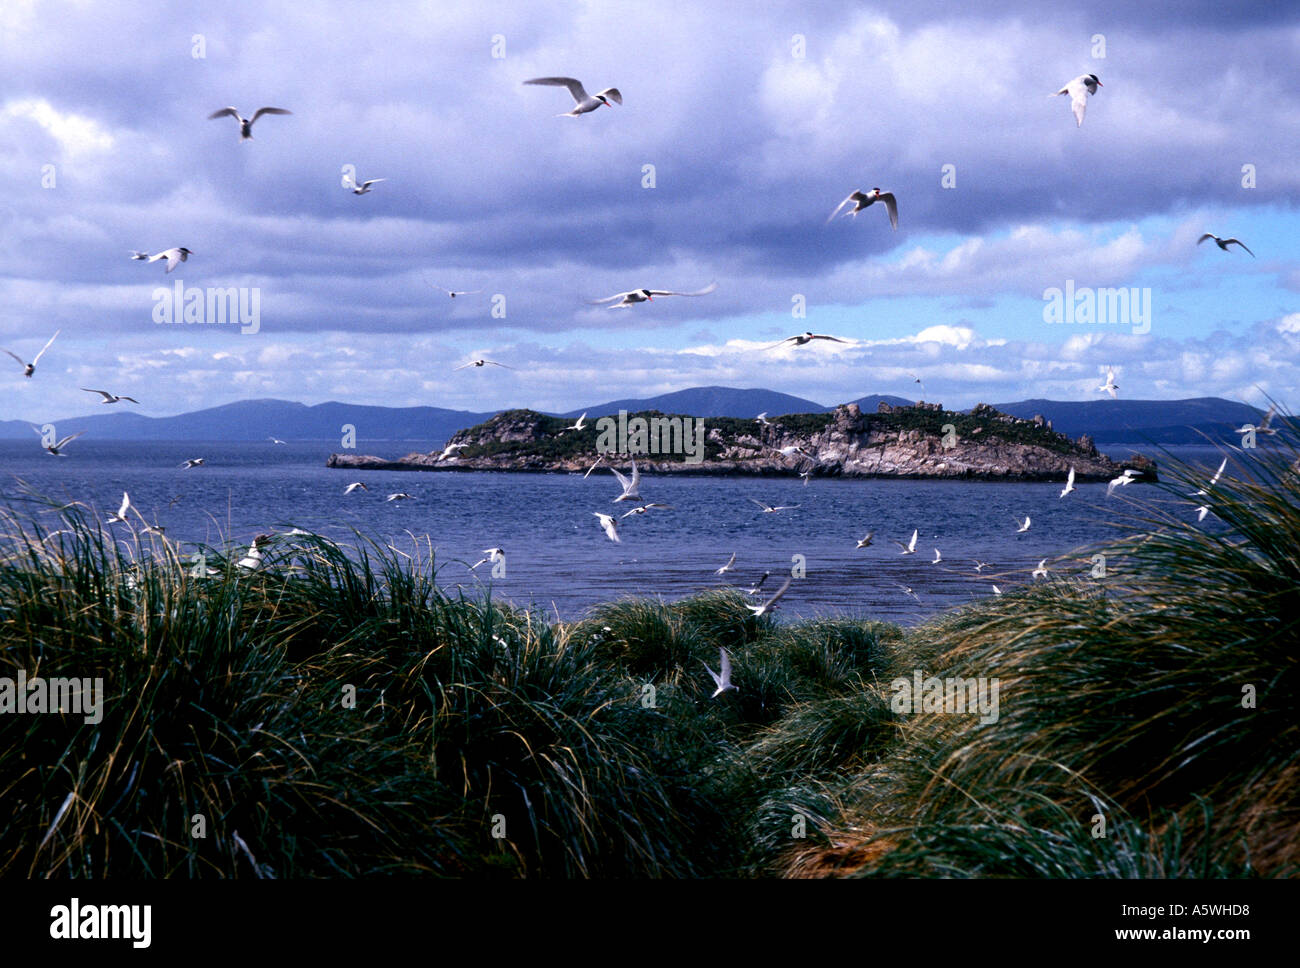 BT2 -18 FLYING SOUTH AMERICAN TERNS - Stock Image